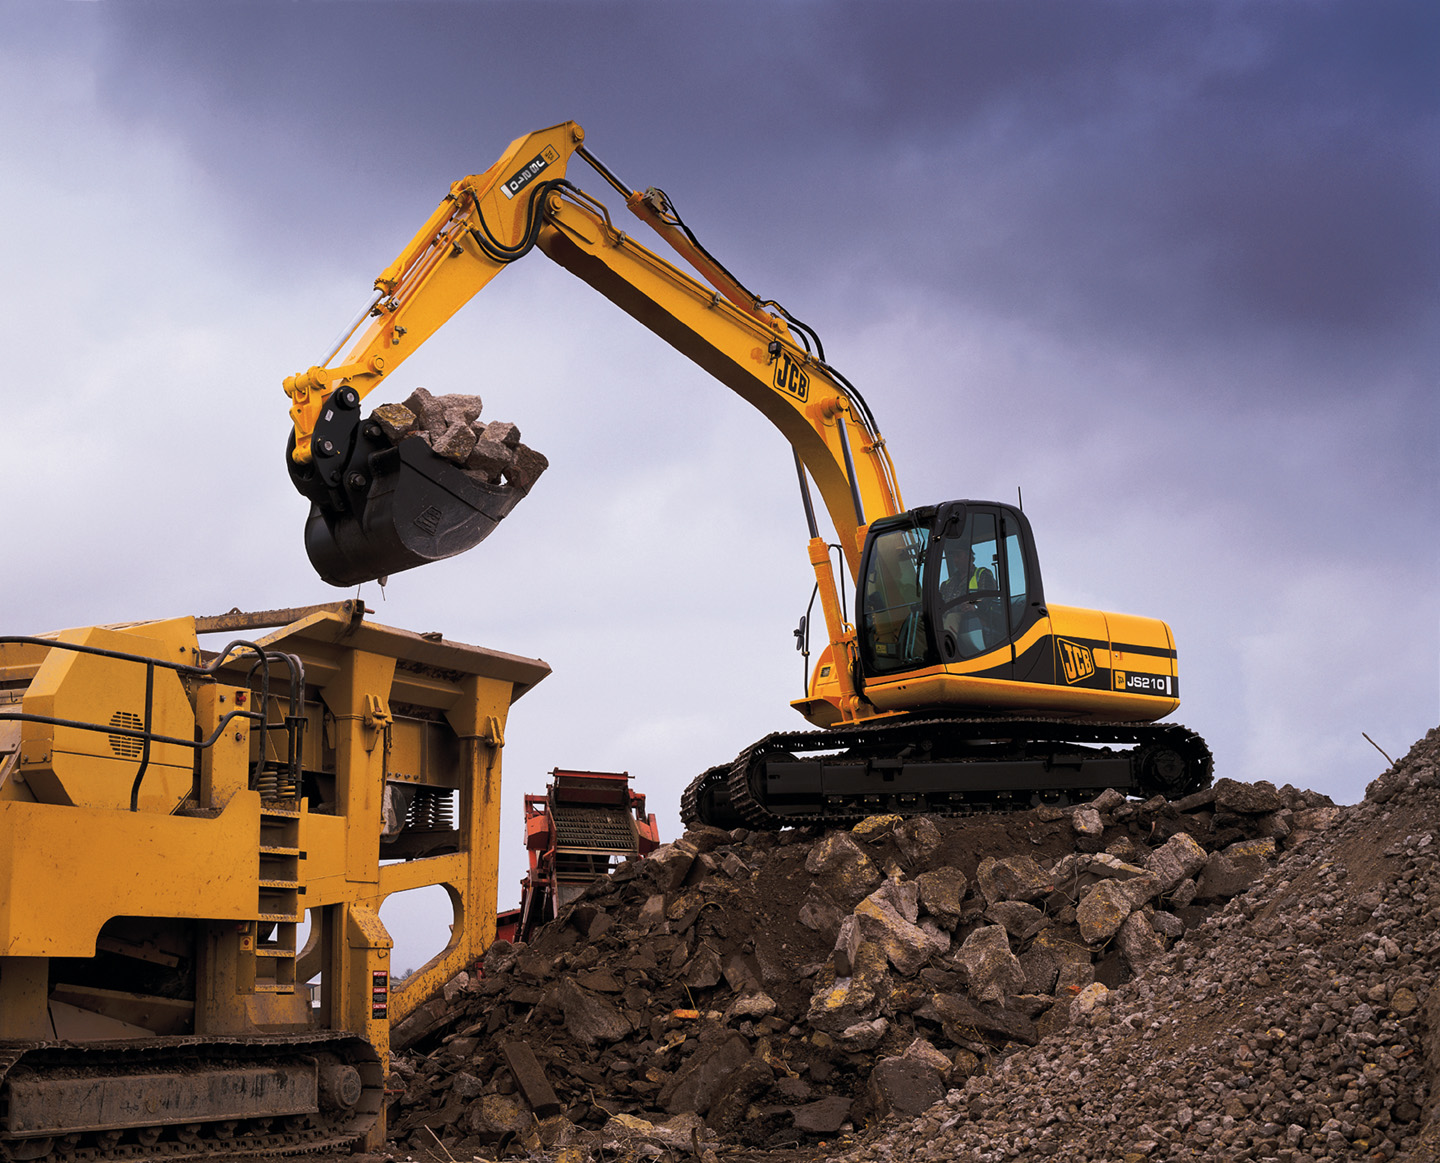 JCB Heavy Excavators